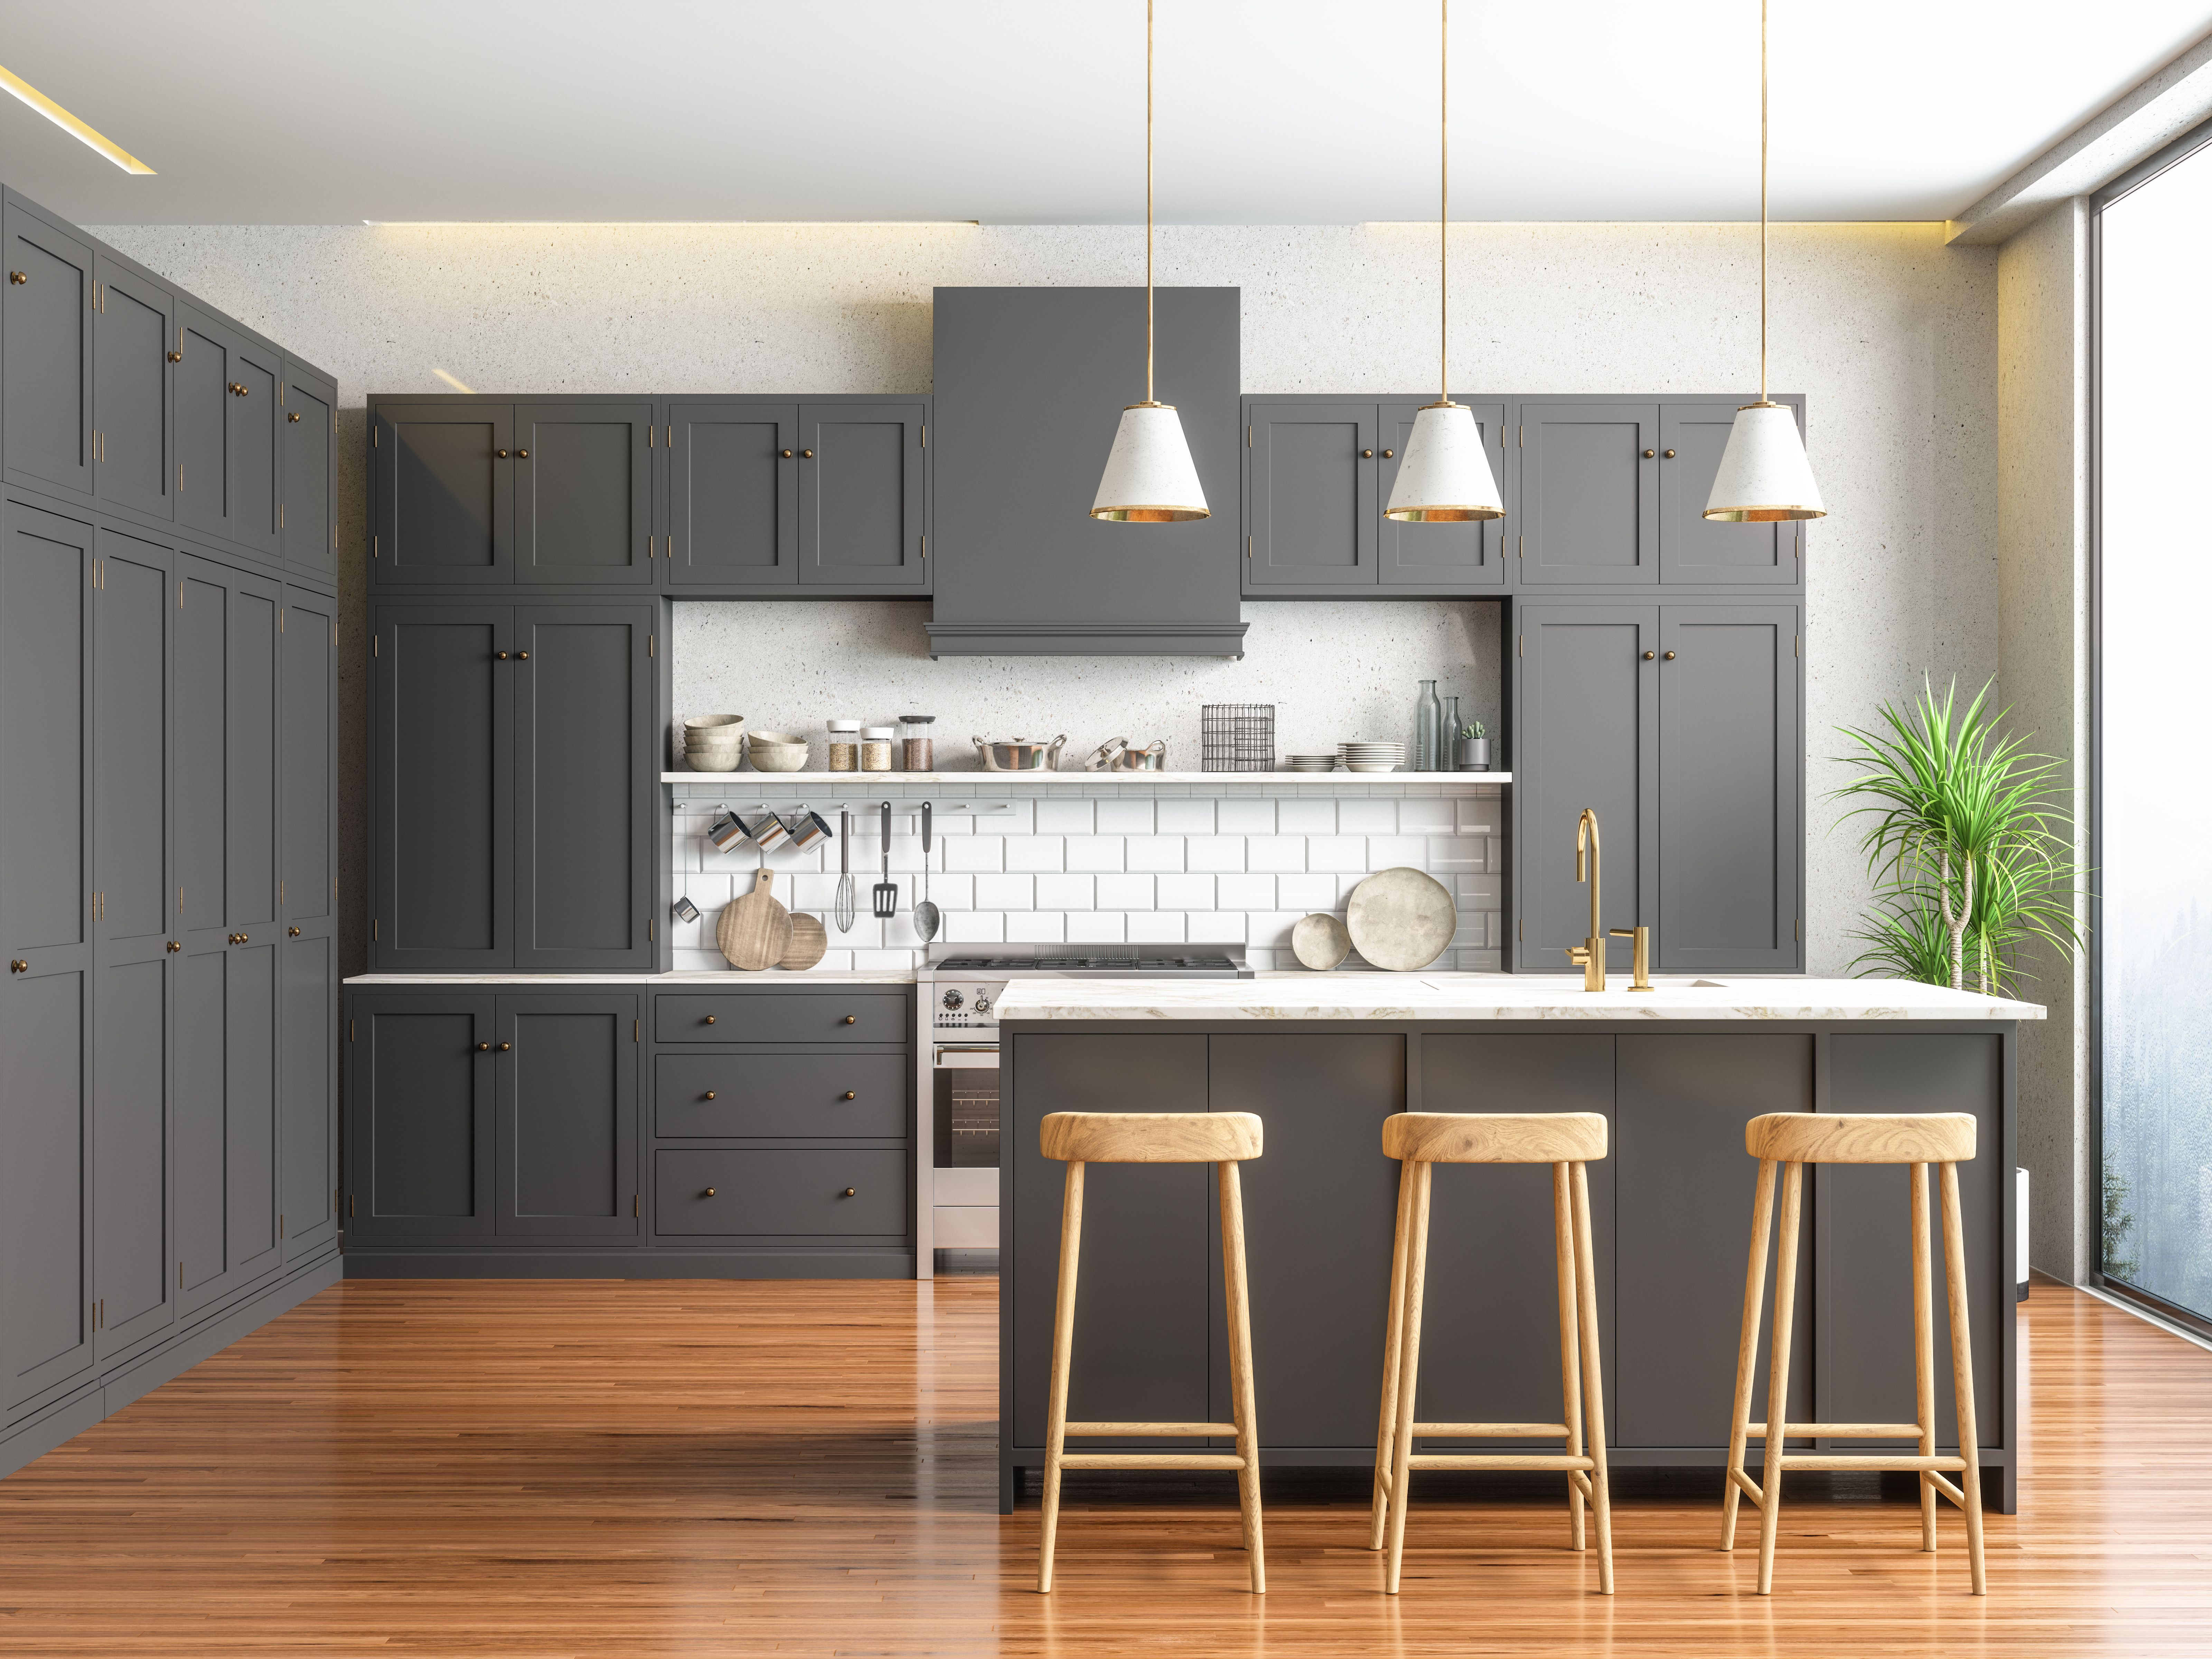 Can You Pull Laminate Off Cabinets Paint The Pressed Wood Hunker In 2020 Clean Kitchen Cabinets Laminate Furniture Kitchen Cabinets India